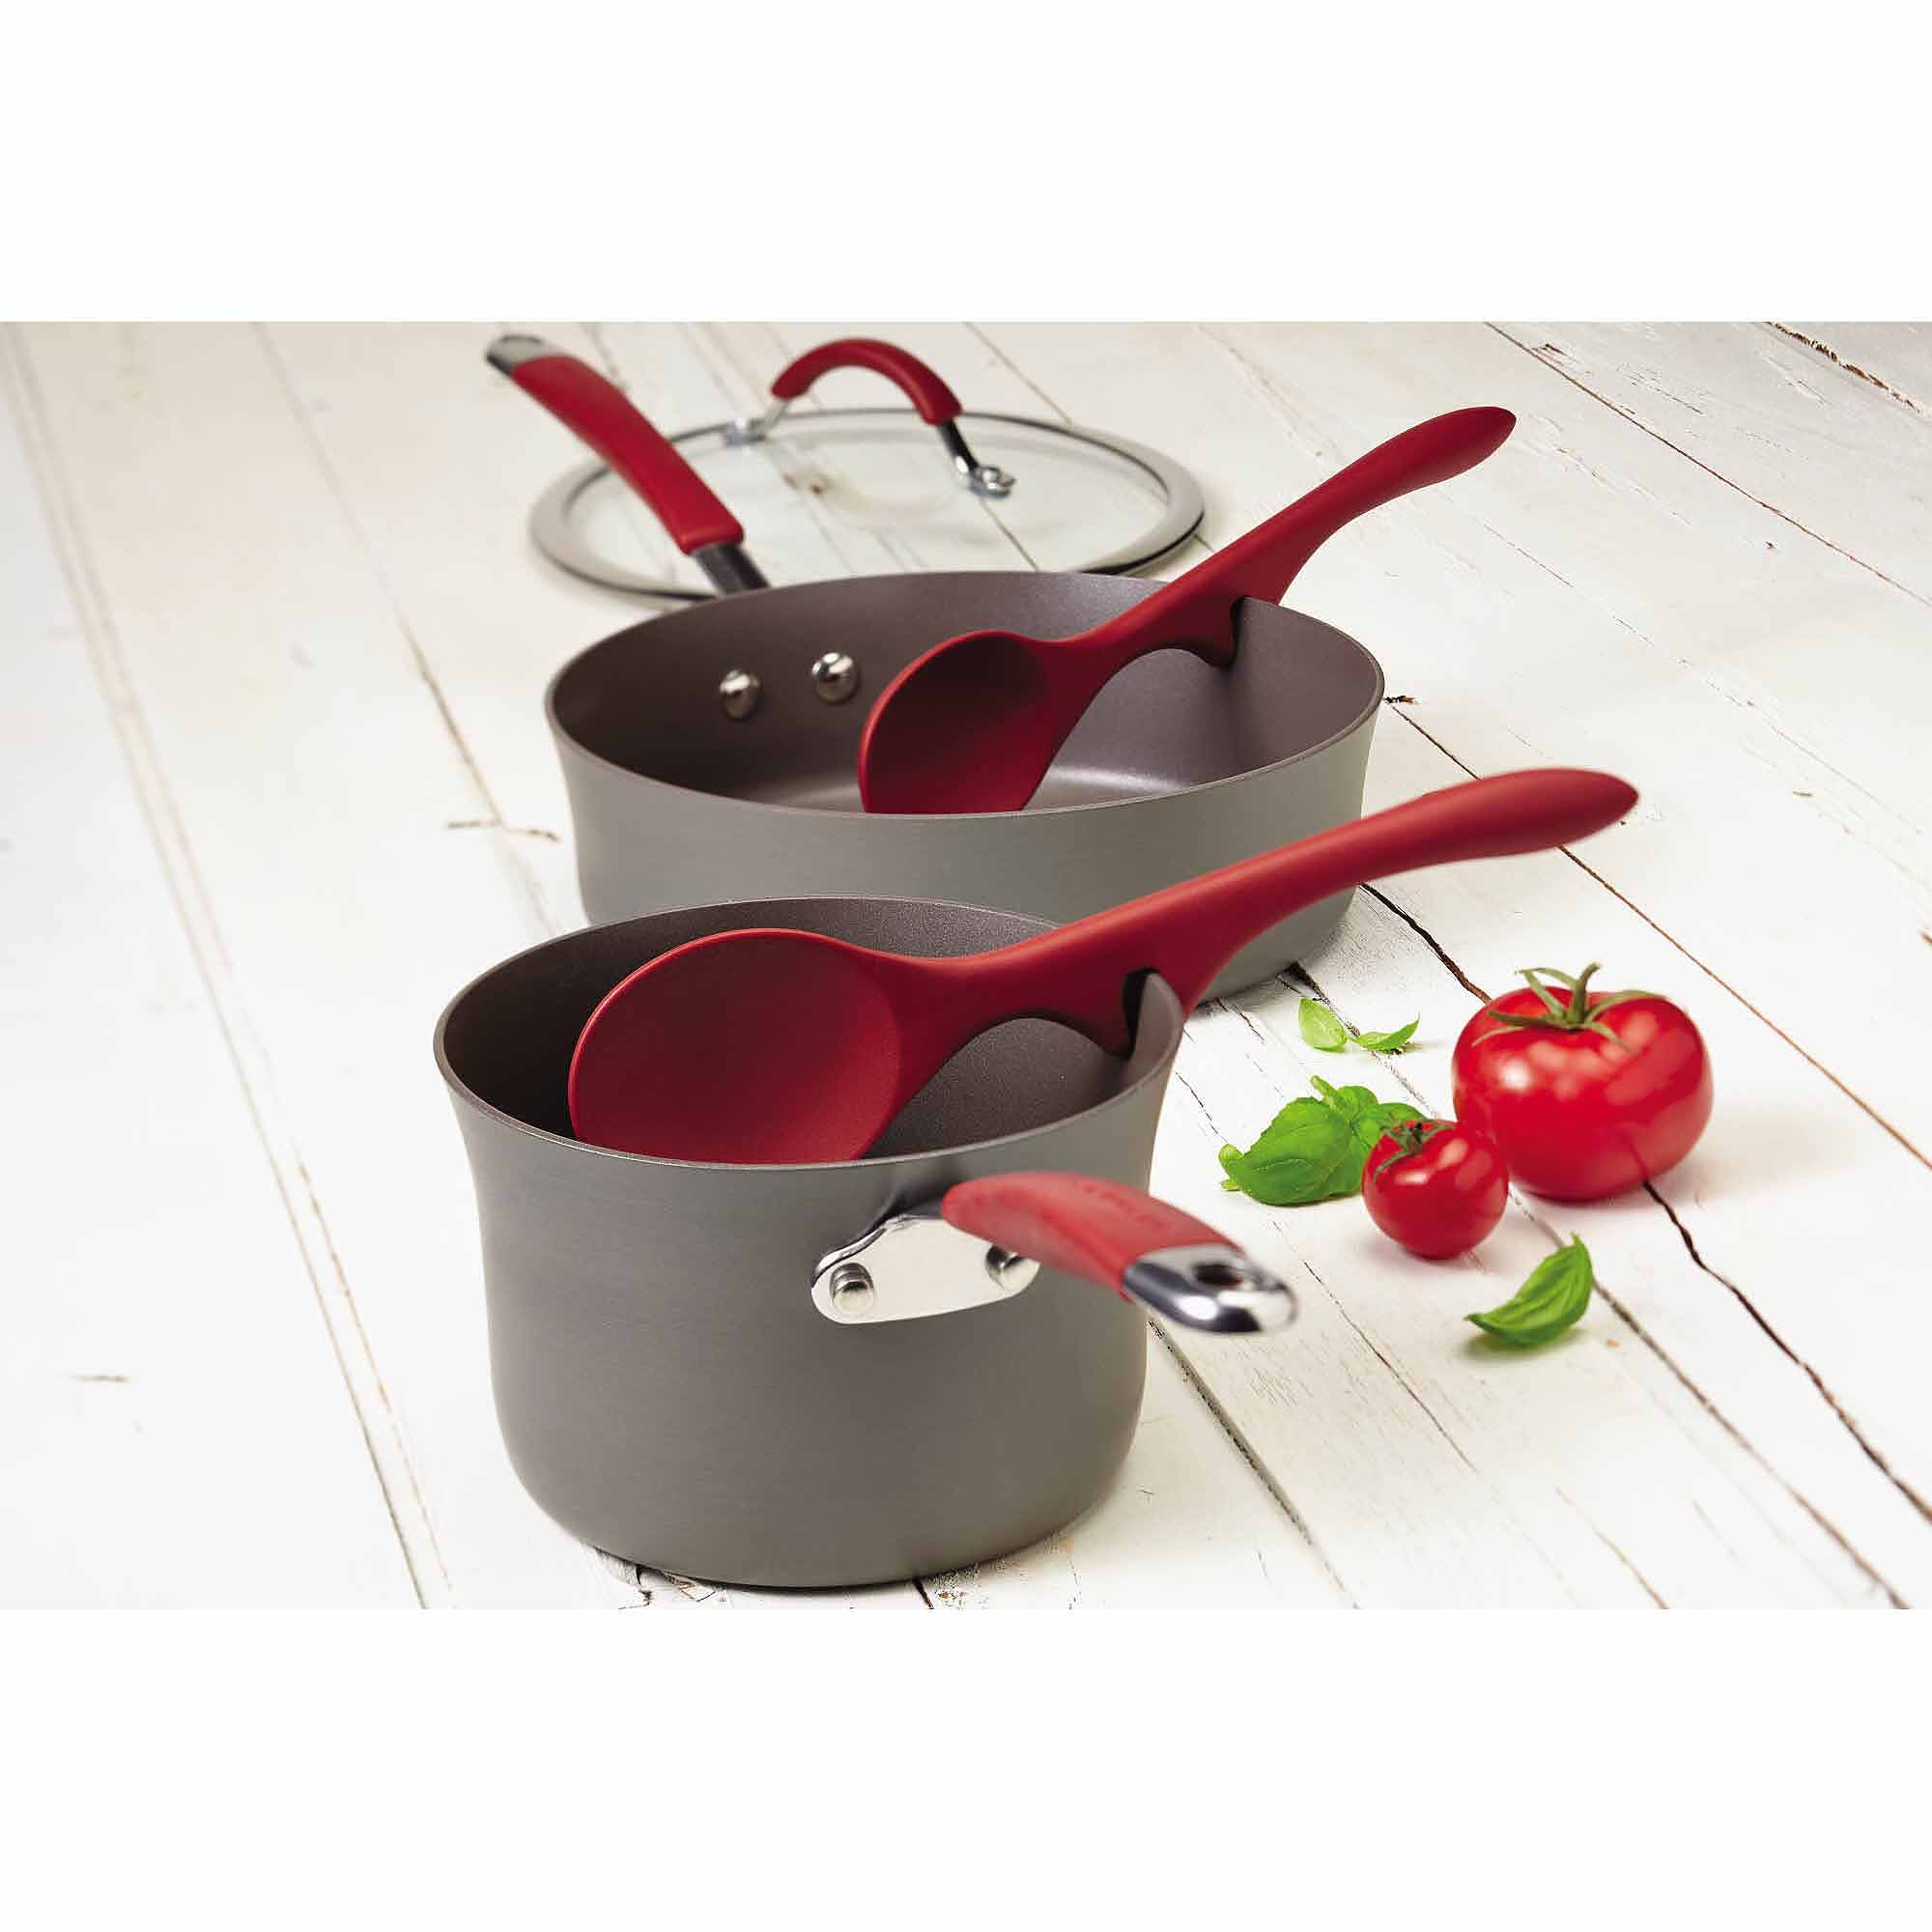 Rachael Ray Cucina Tools 2-Piece Lazy Solid Spoon Set, Cranberry Red